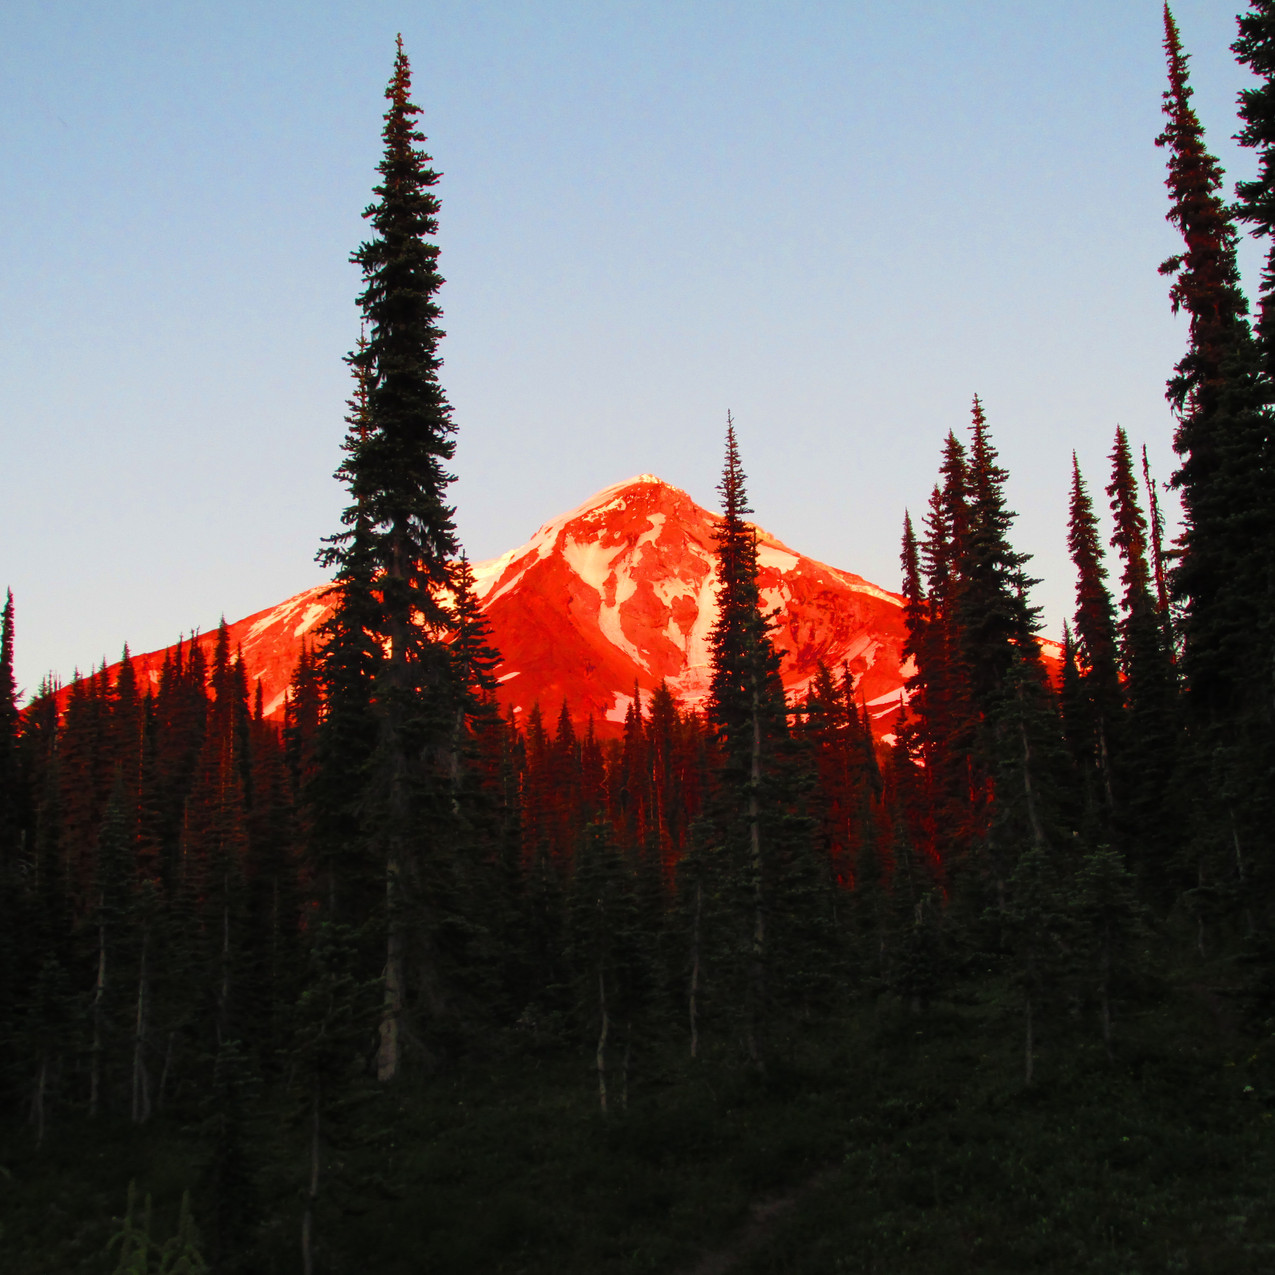 This was from my campsite to end a glorious day on the trail.